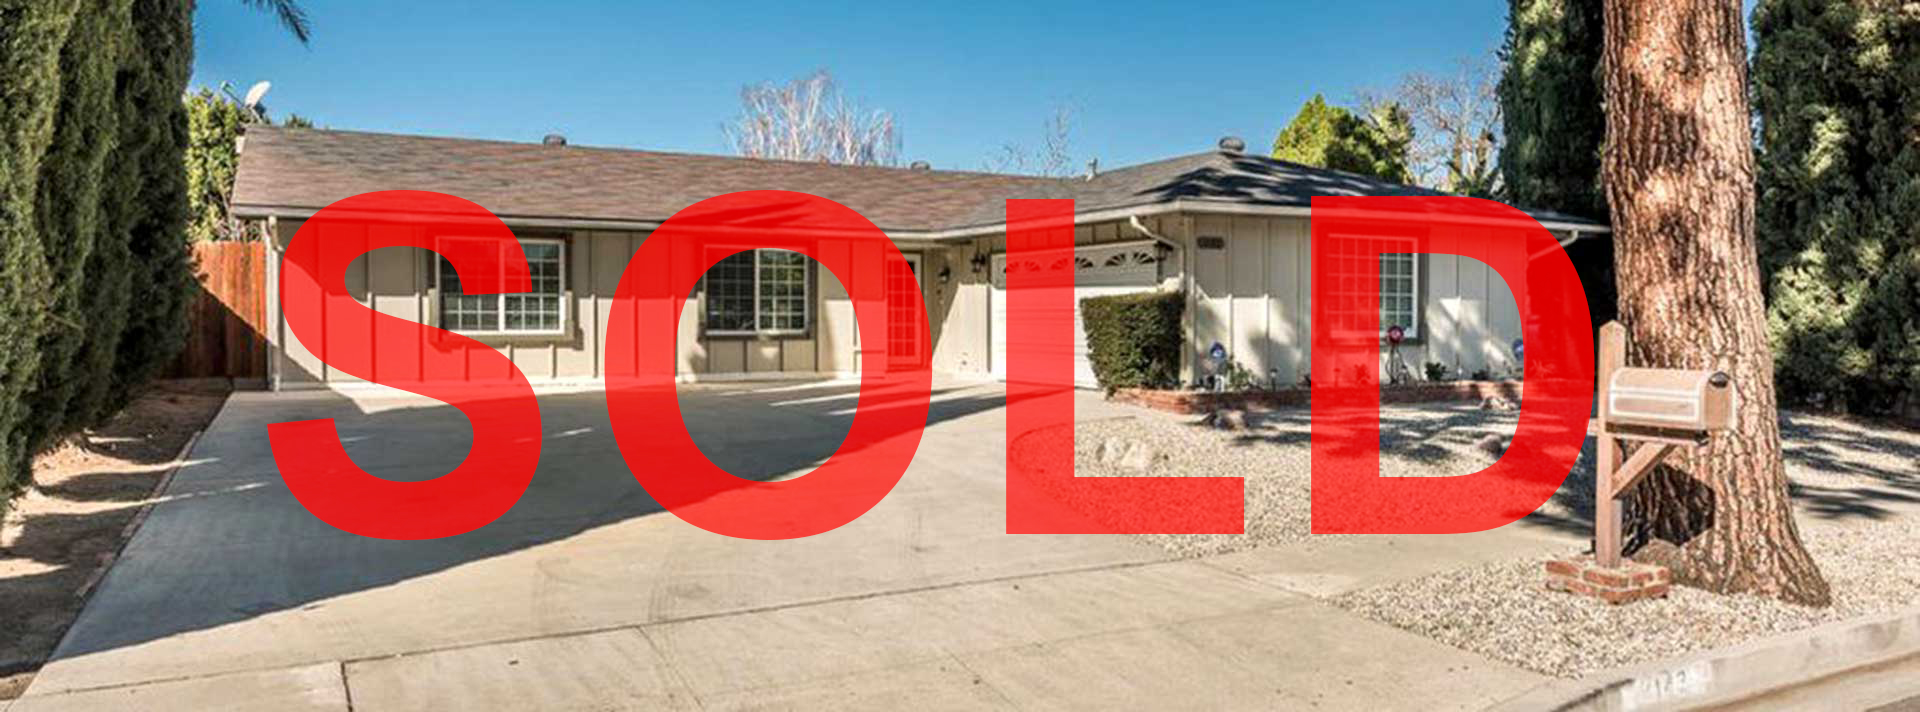 2143-Sequoia-Ave-Simi-Valley-sold.jpg